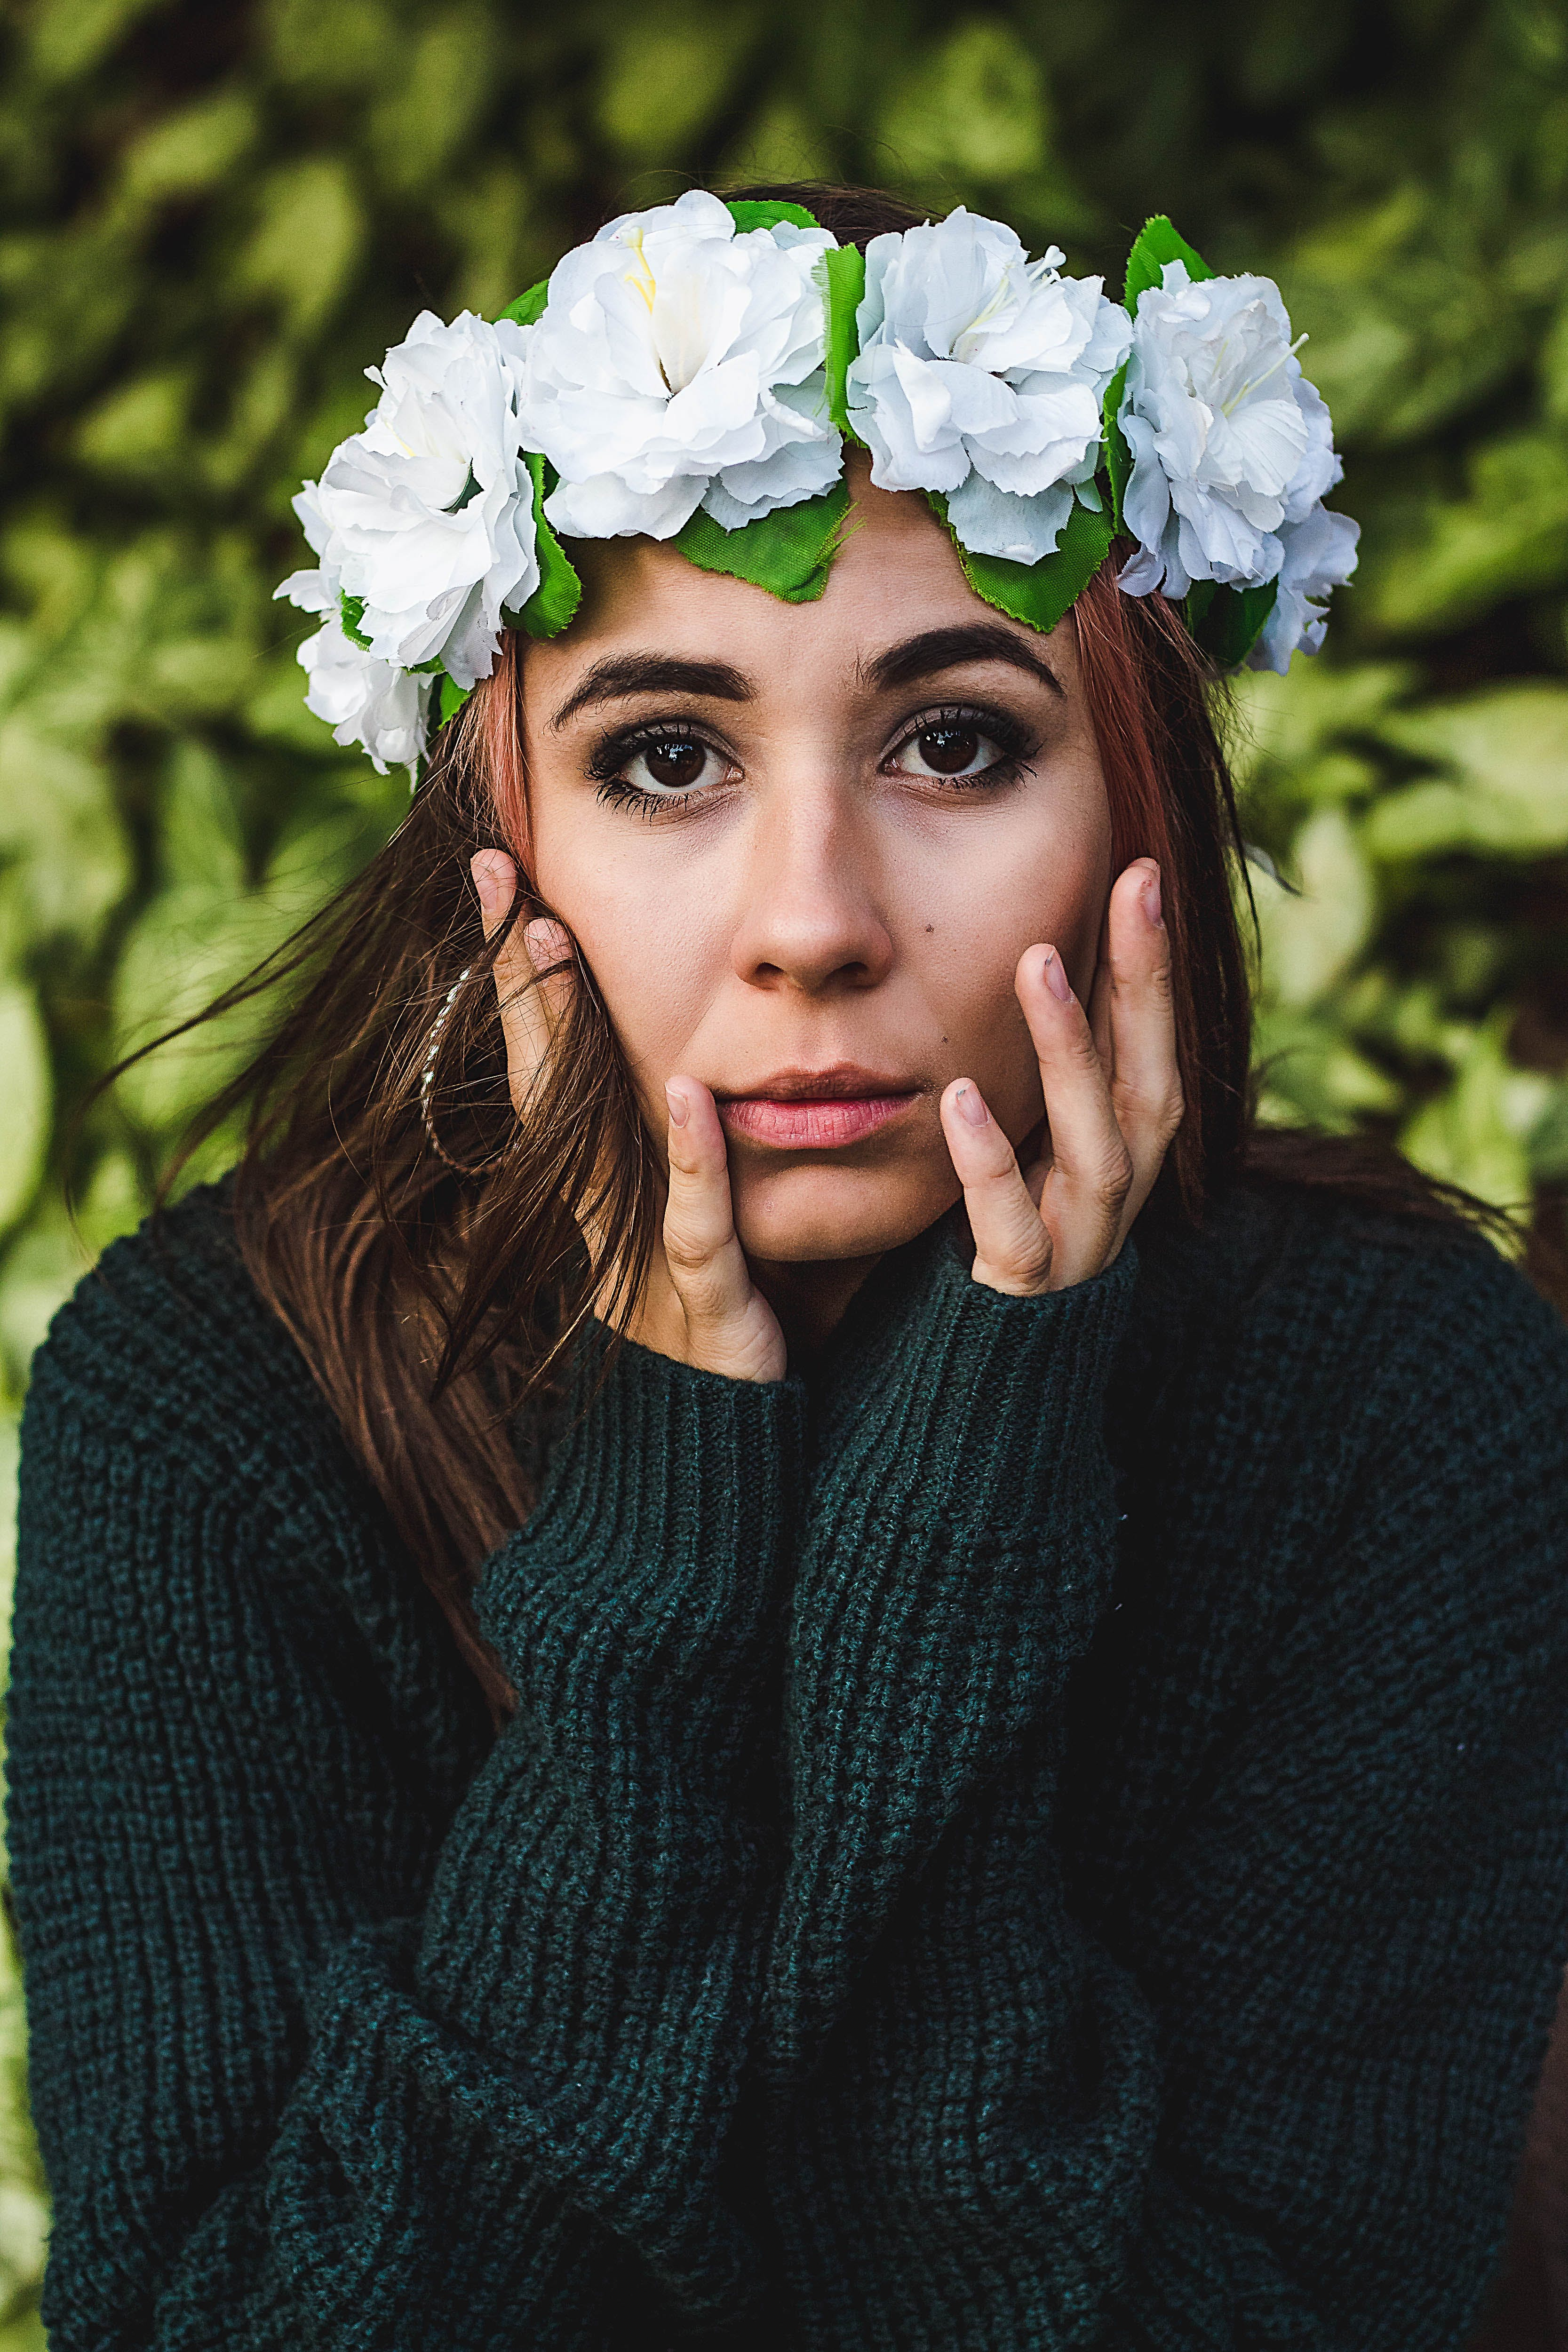 Shallow Focus Photo Of Woman In Green Sweater